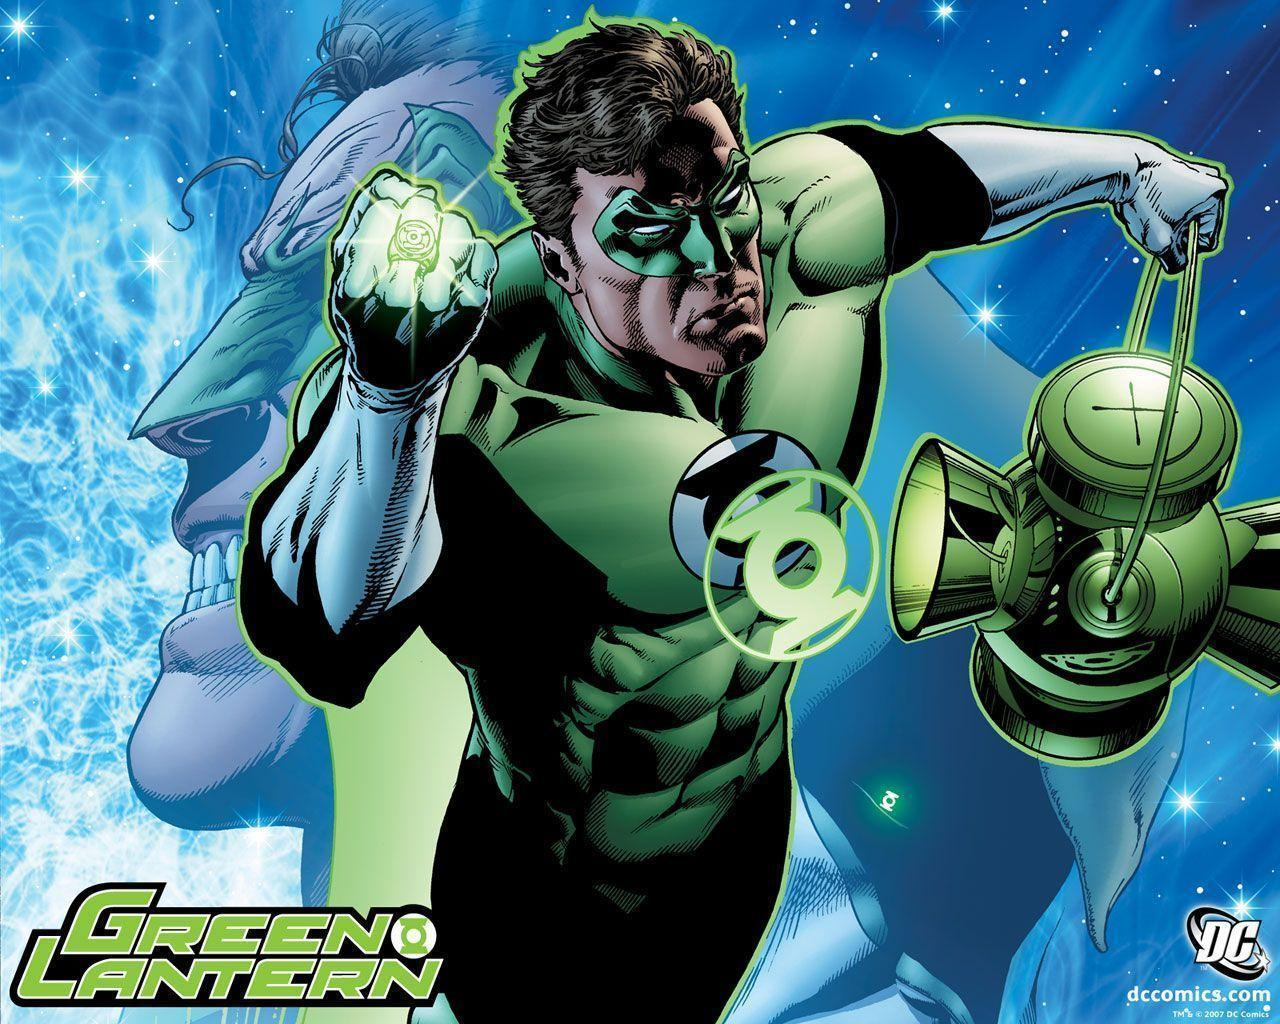 Green Lantern Computer Wallpapers, Desktop Backgrounds 1280x1024